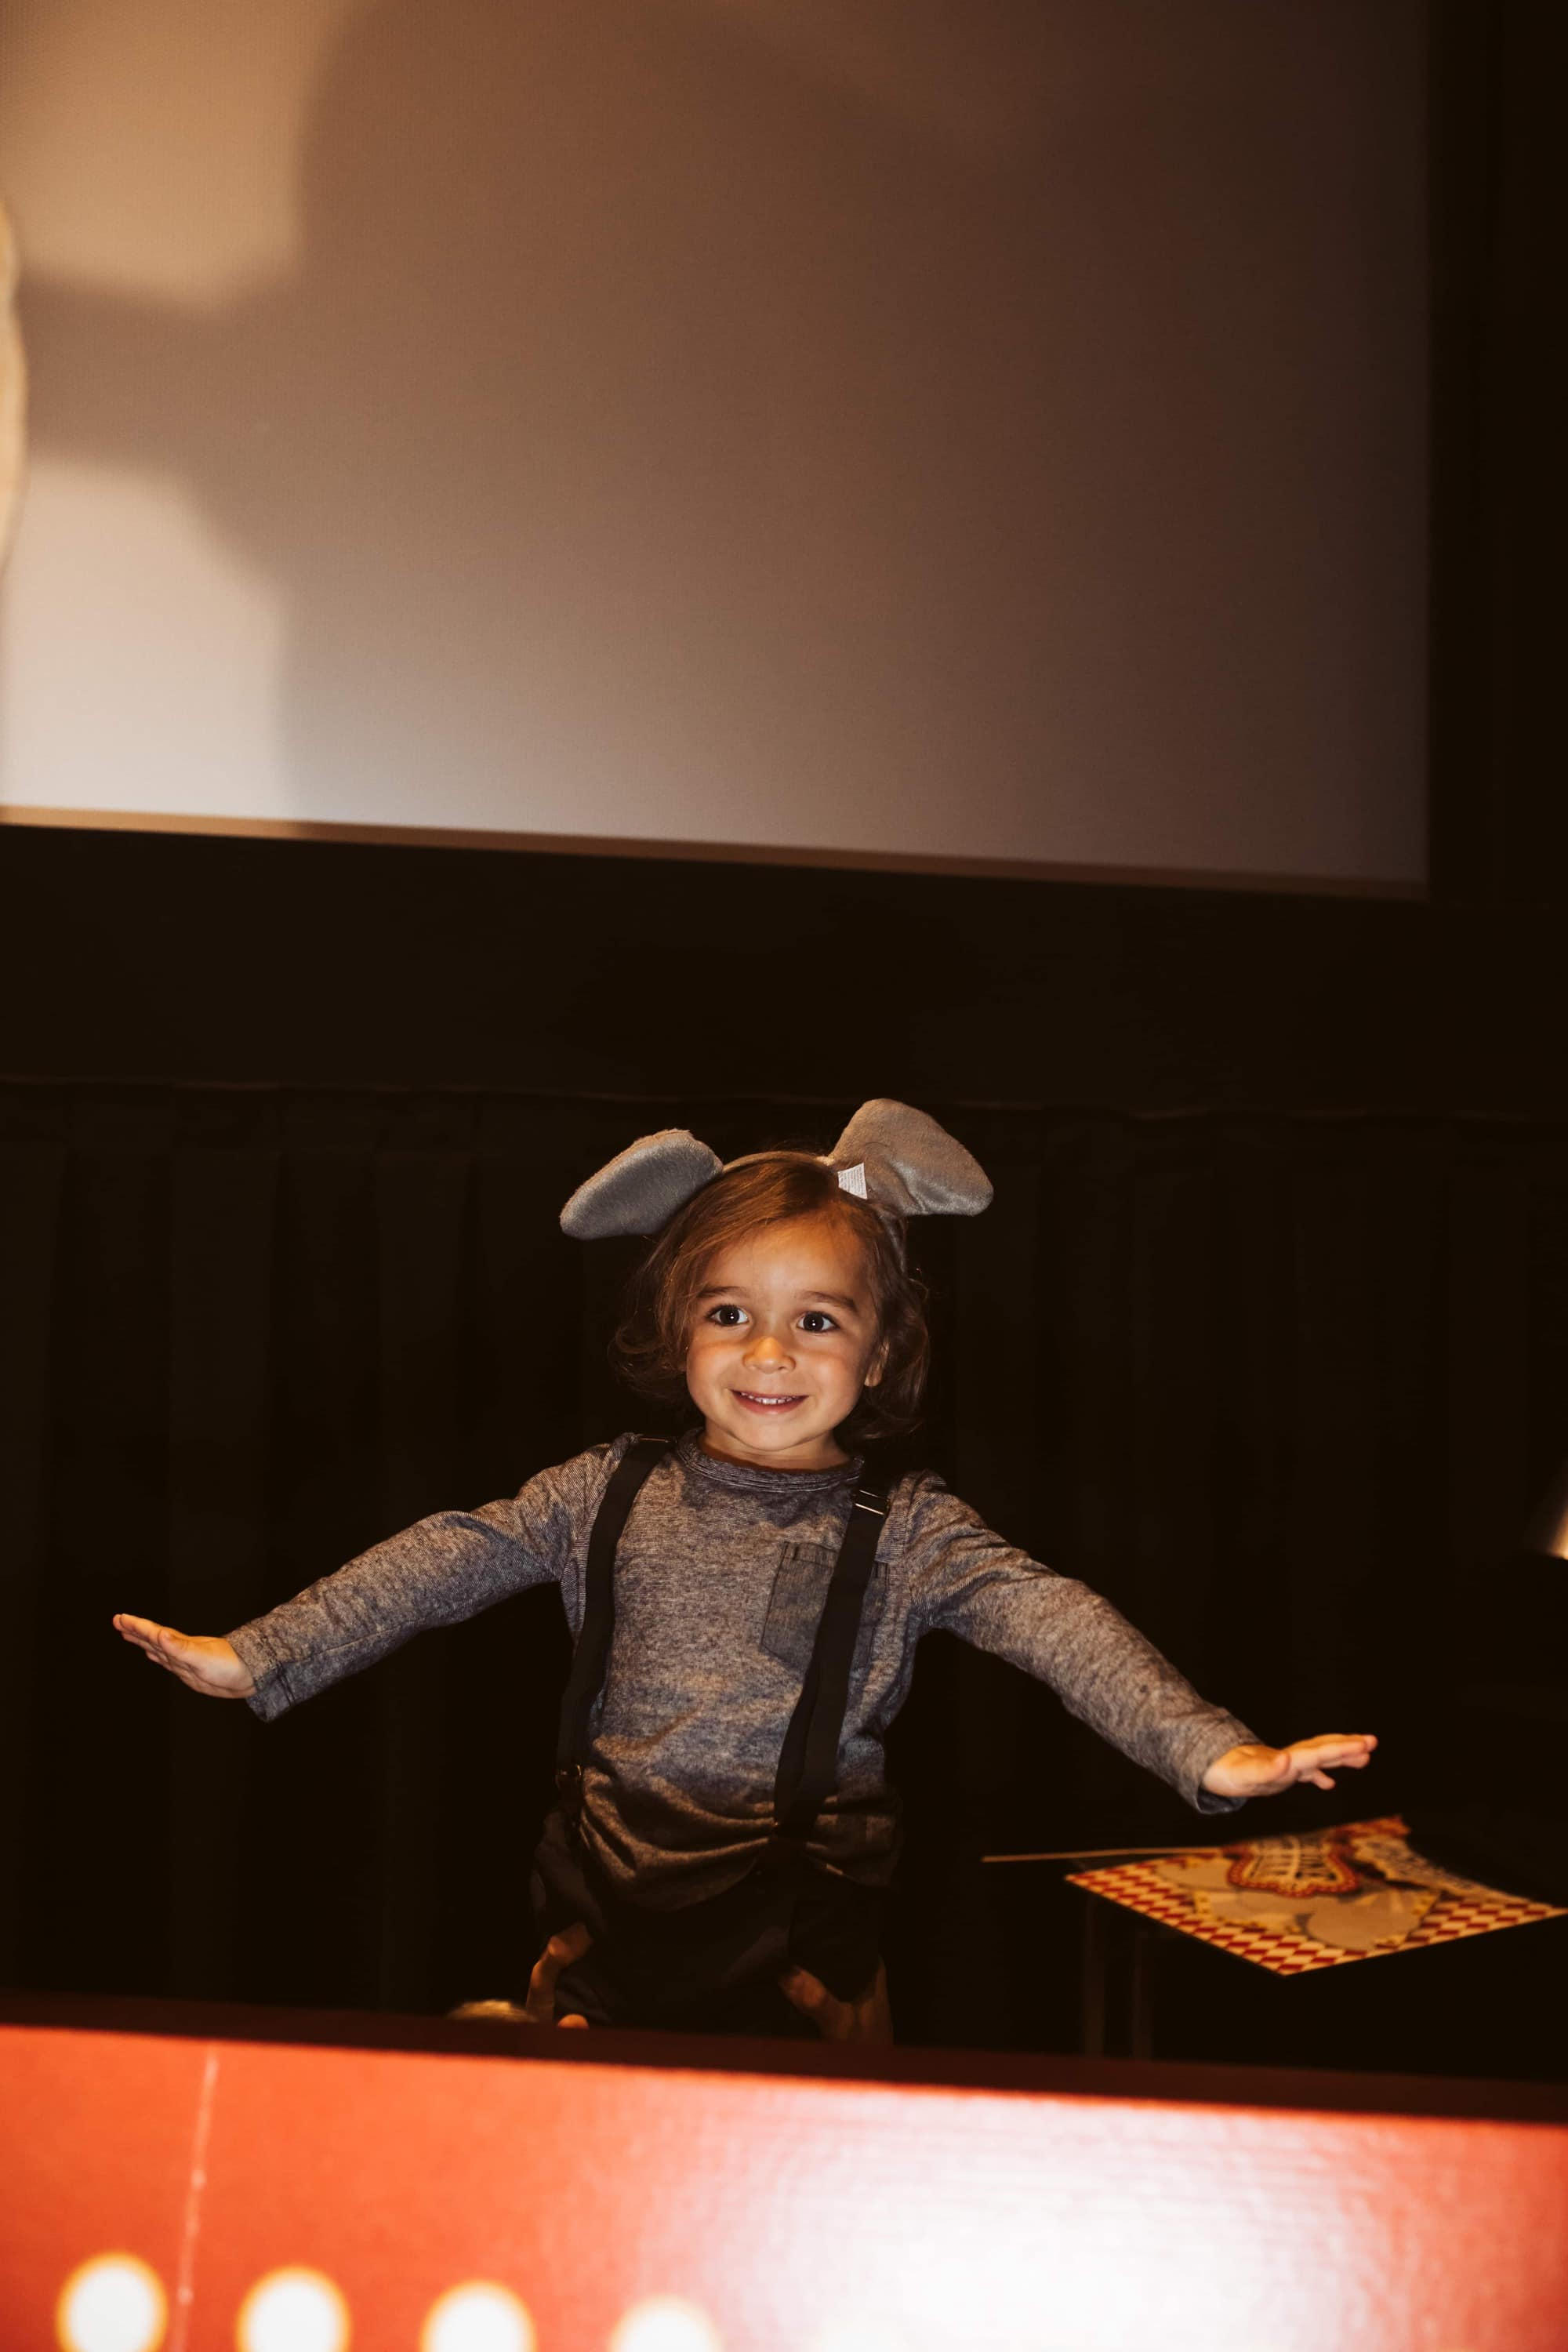 kid playing theater